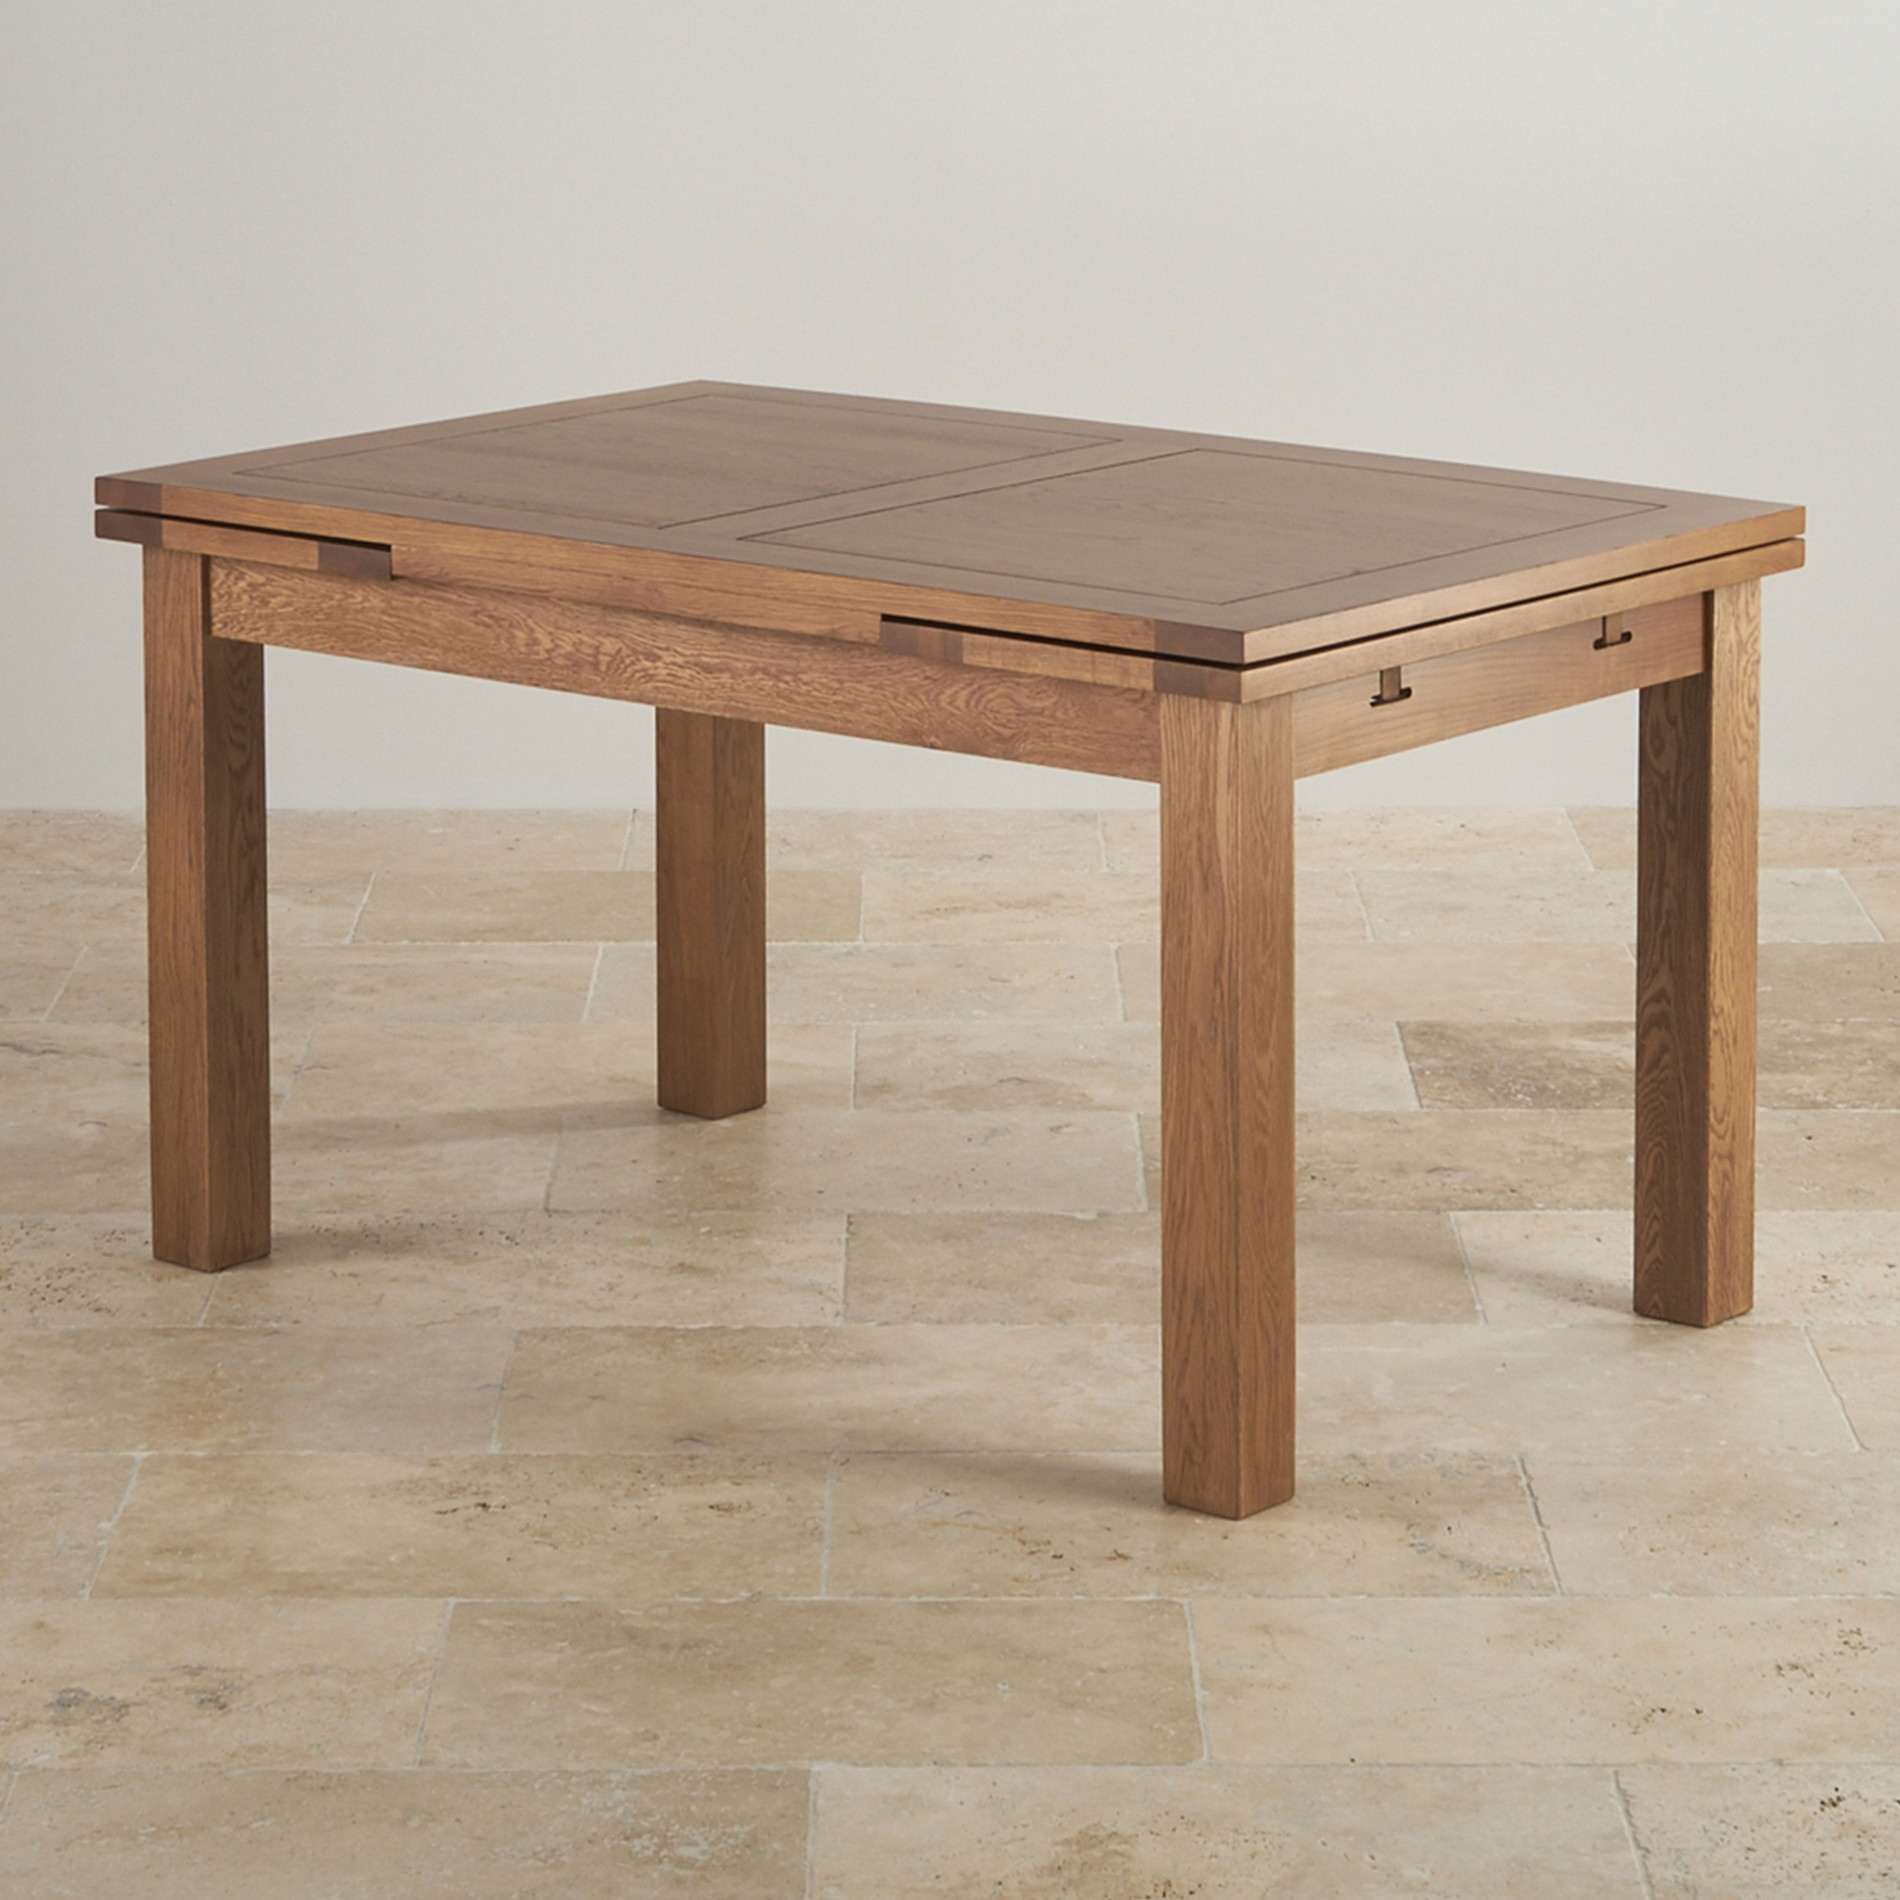 Ringgold Extendable Coffee Table With Storage: Rustic Extending Dining Table In Real Oak